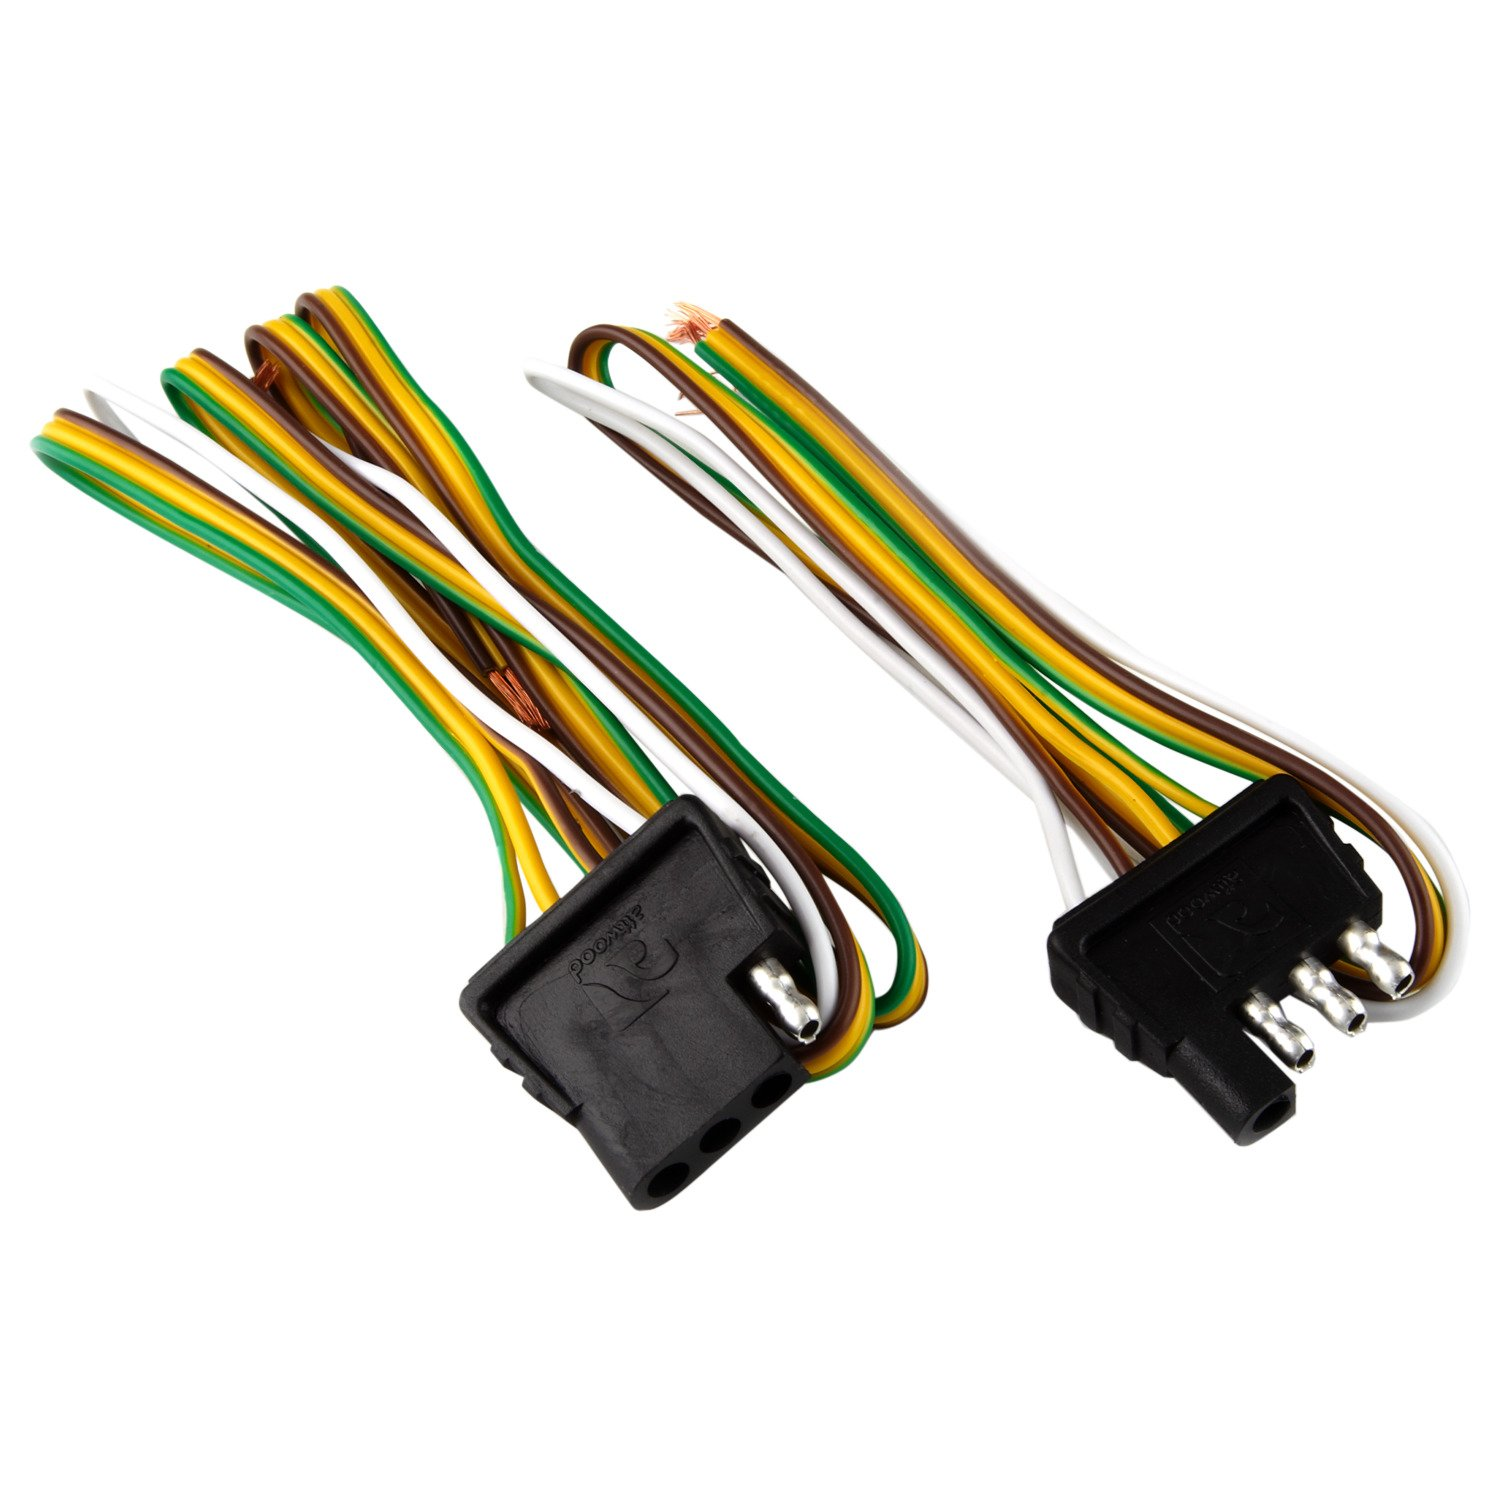 small resolution of attwood 4 way flat wiring harness kit for vehicles and trailers audi tt wiring harness trailer wiring harness trailers